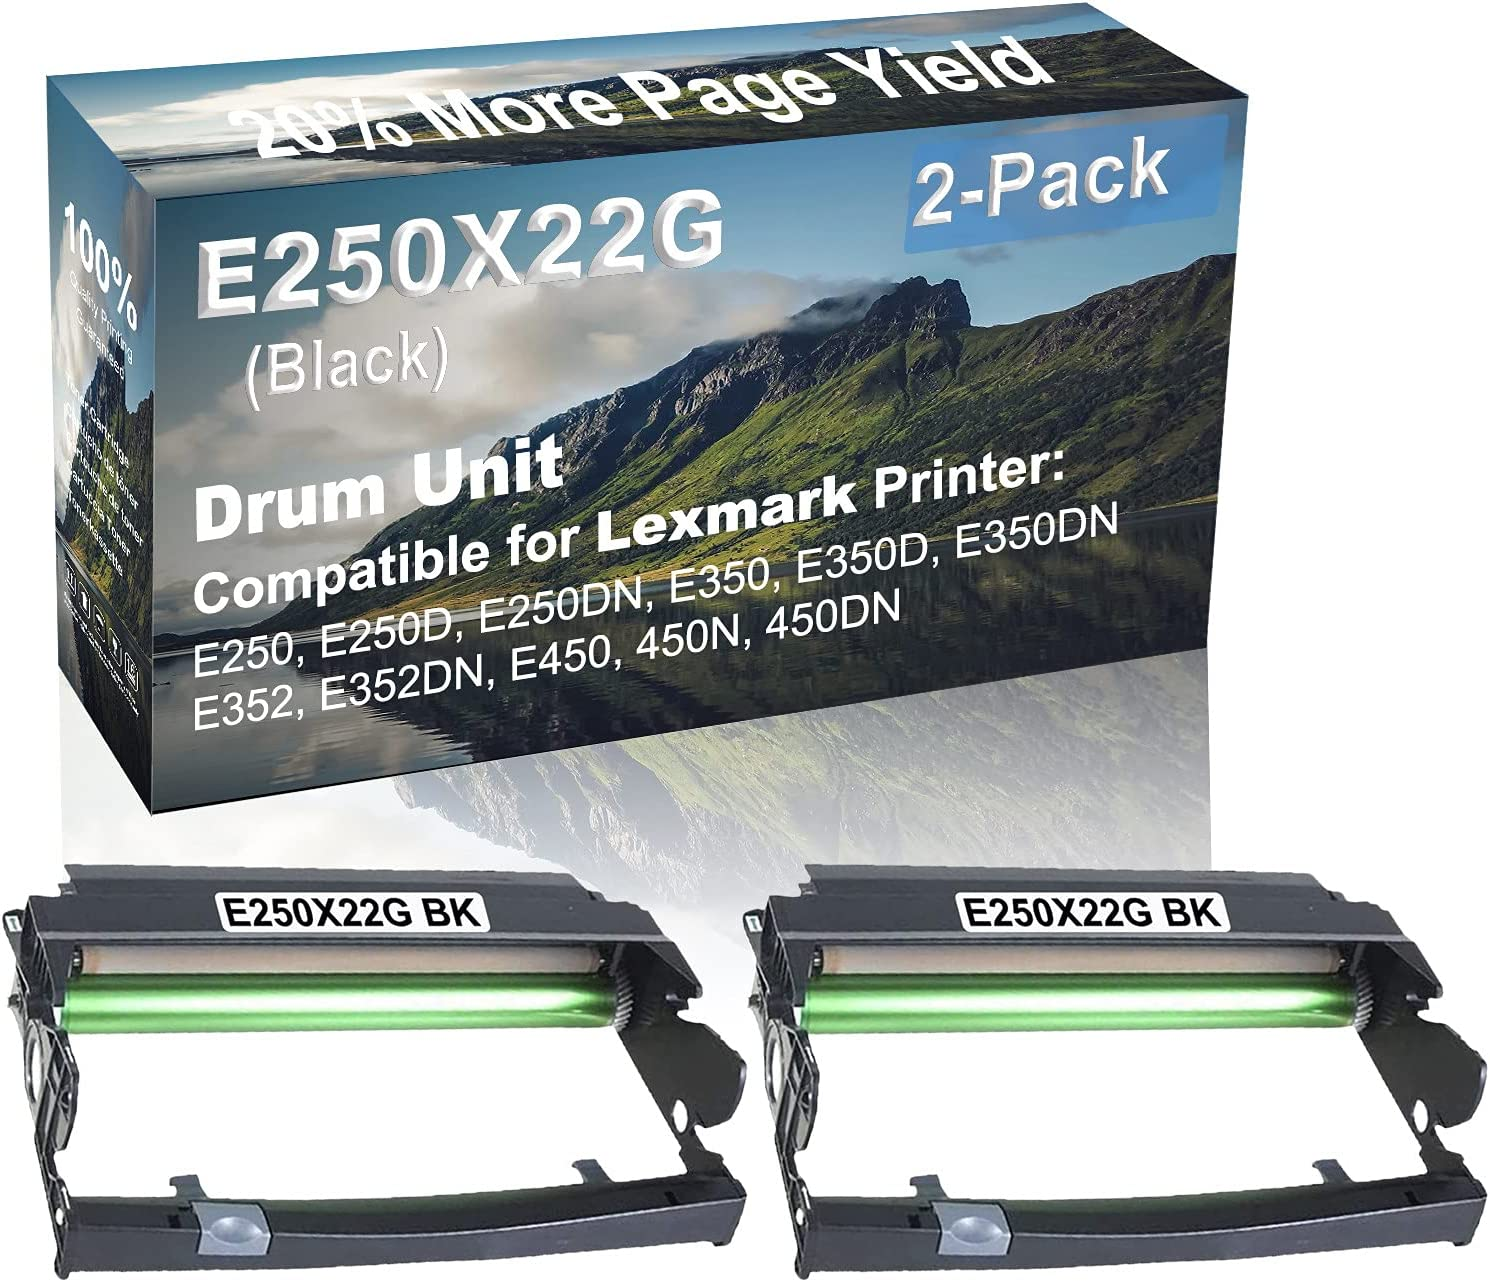 2-Pack Compatible Drum Unit (Black) Replacement for Lexmark E250X22G Drum Kit use for Lexmark E352DN, E450, 450N, 450DN Printer